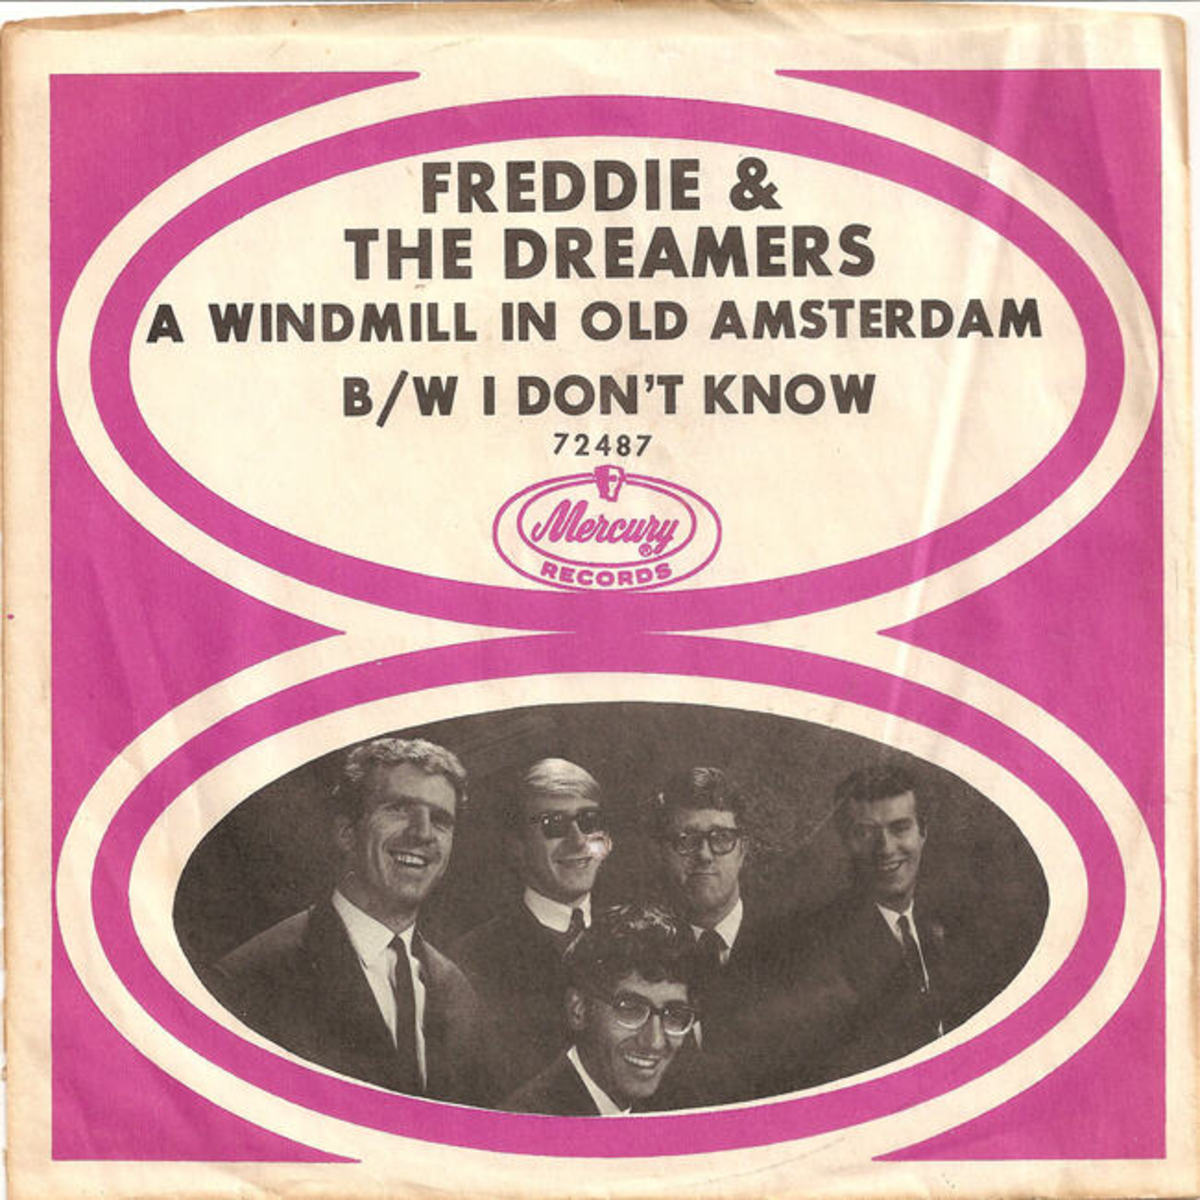 Freddie and the Dreamers I Don't Know picture sleeve